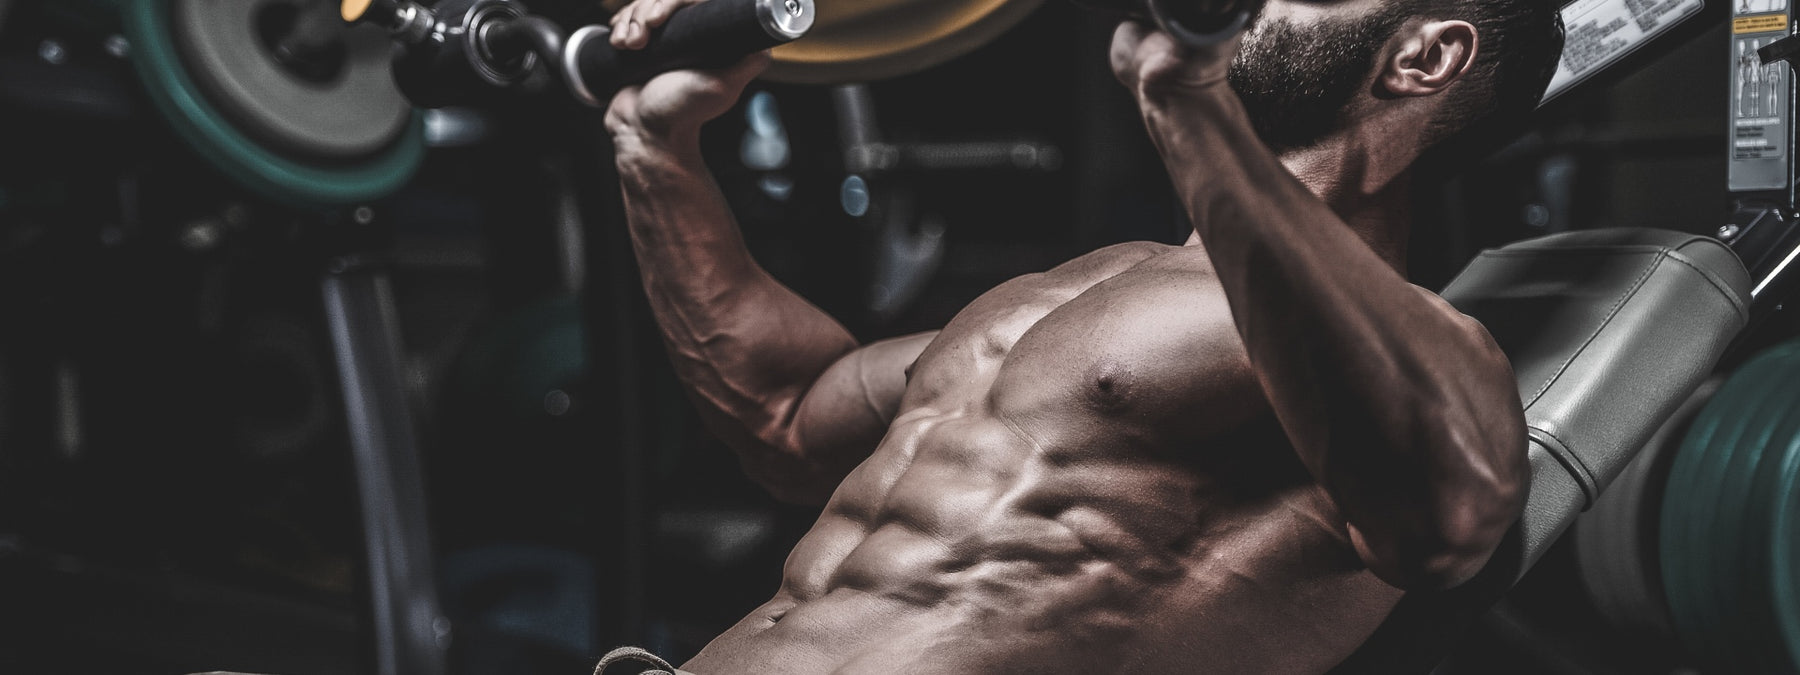 The 5 Perils Of Muscle Building (And 5 Practical Solutions)